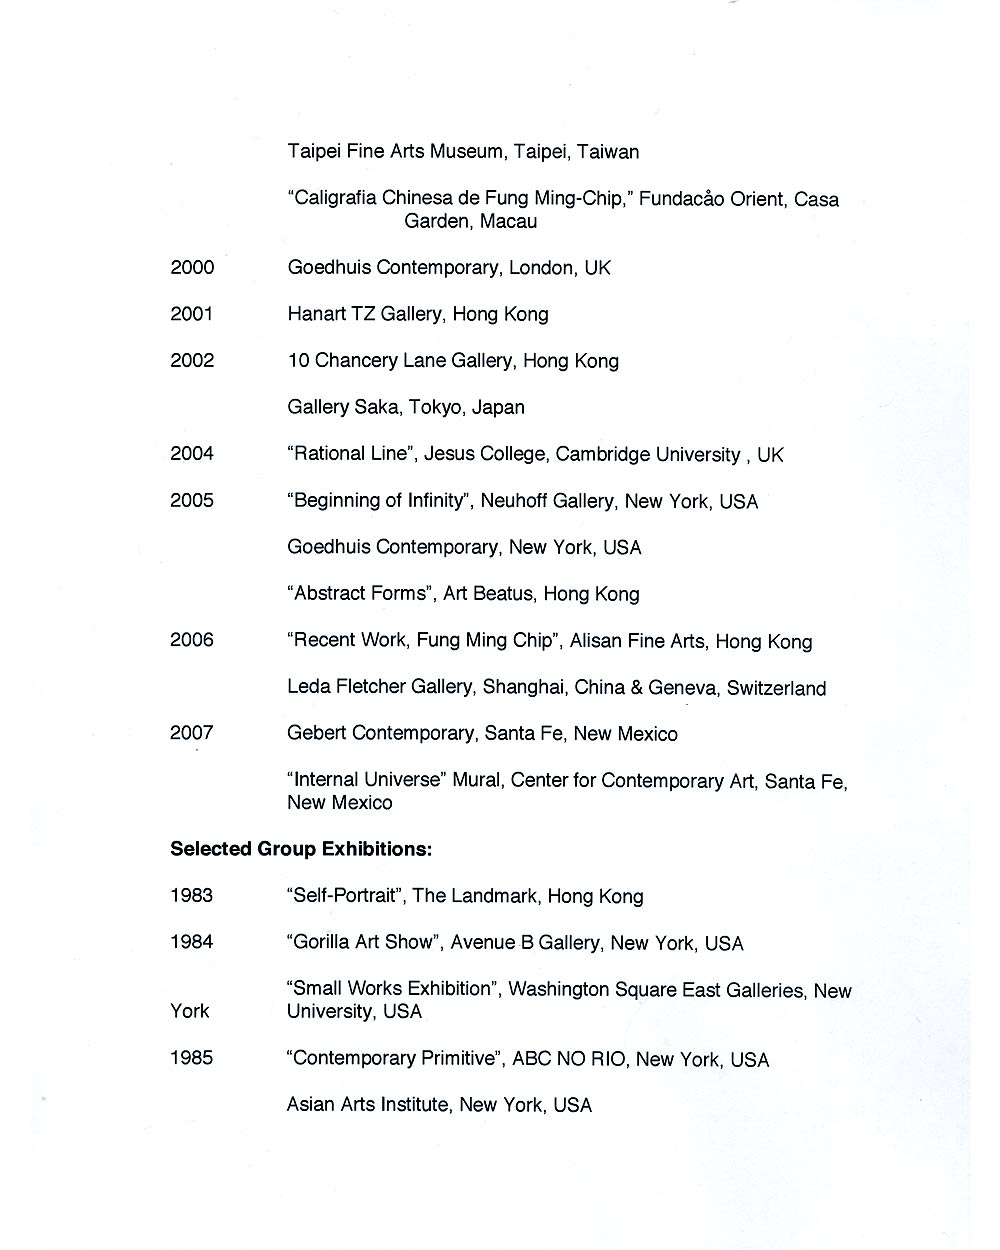 Ming Chip Fung's Resume, pg 2